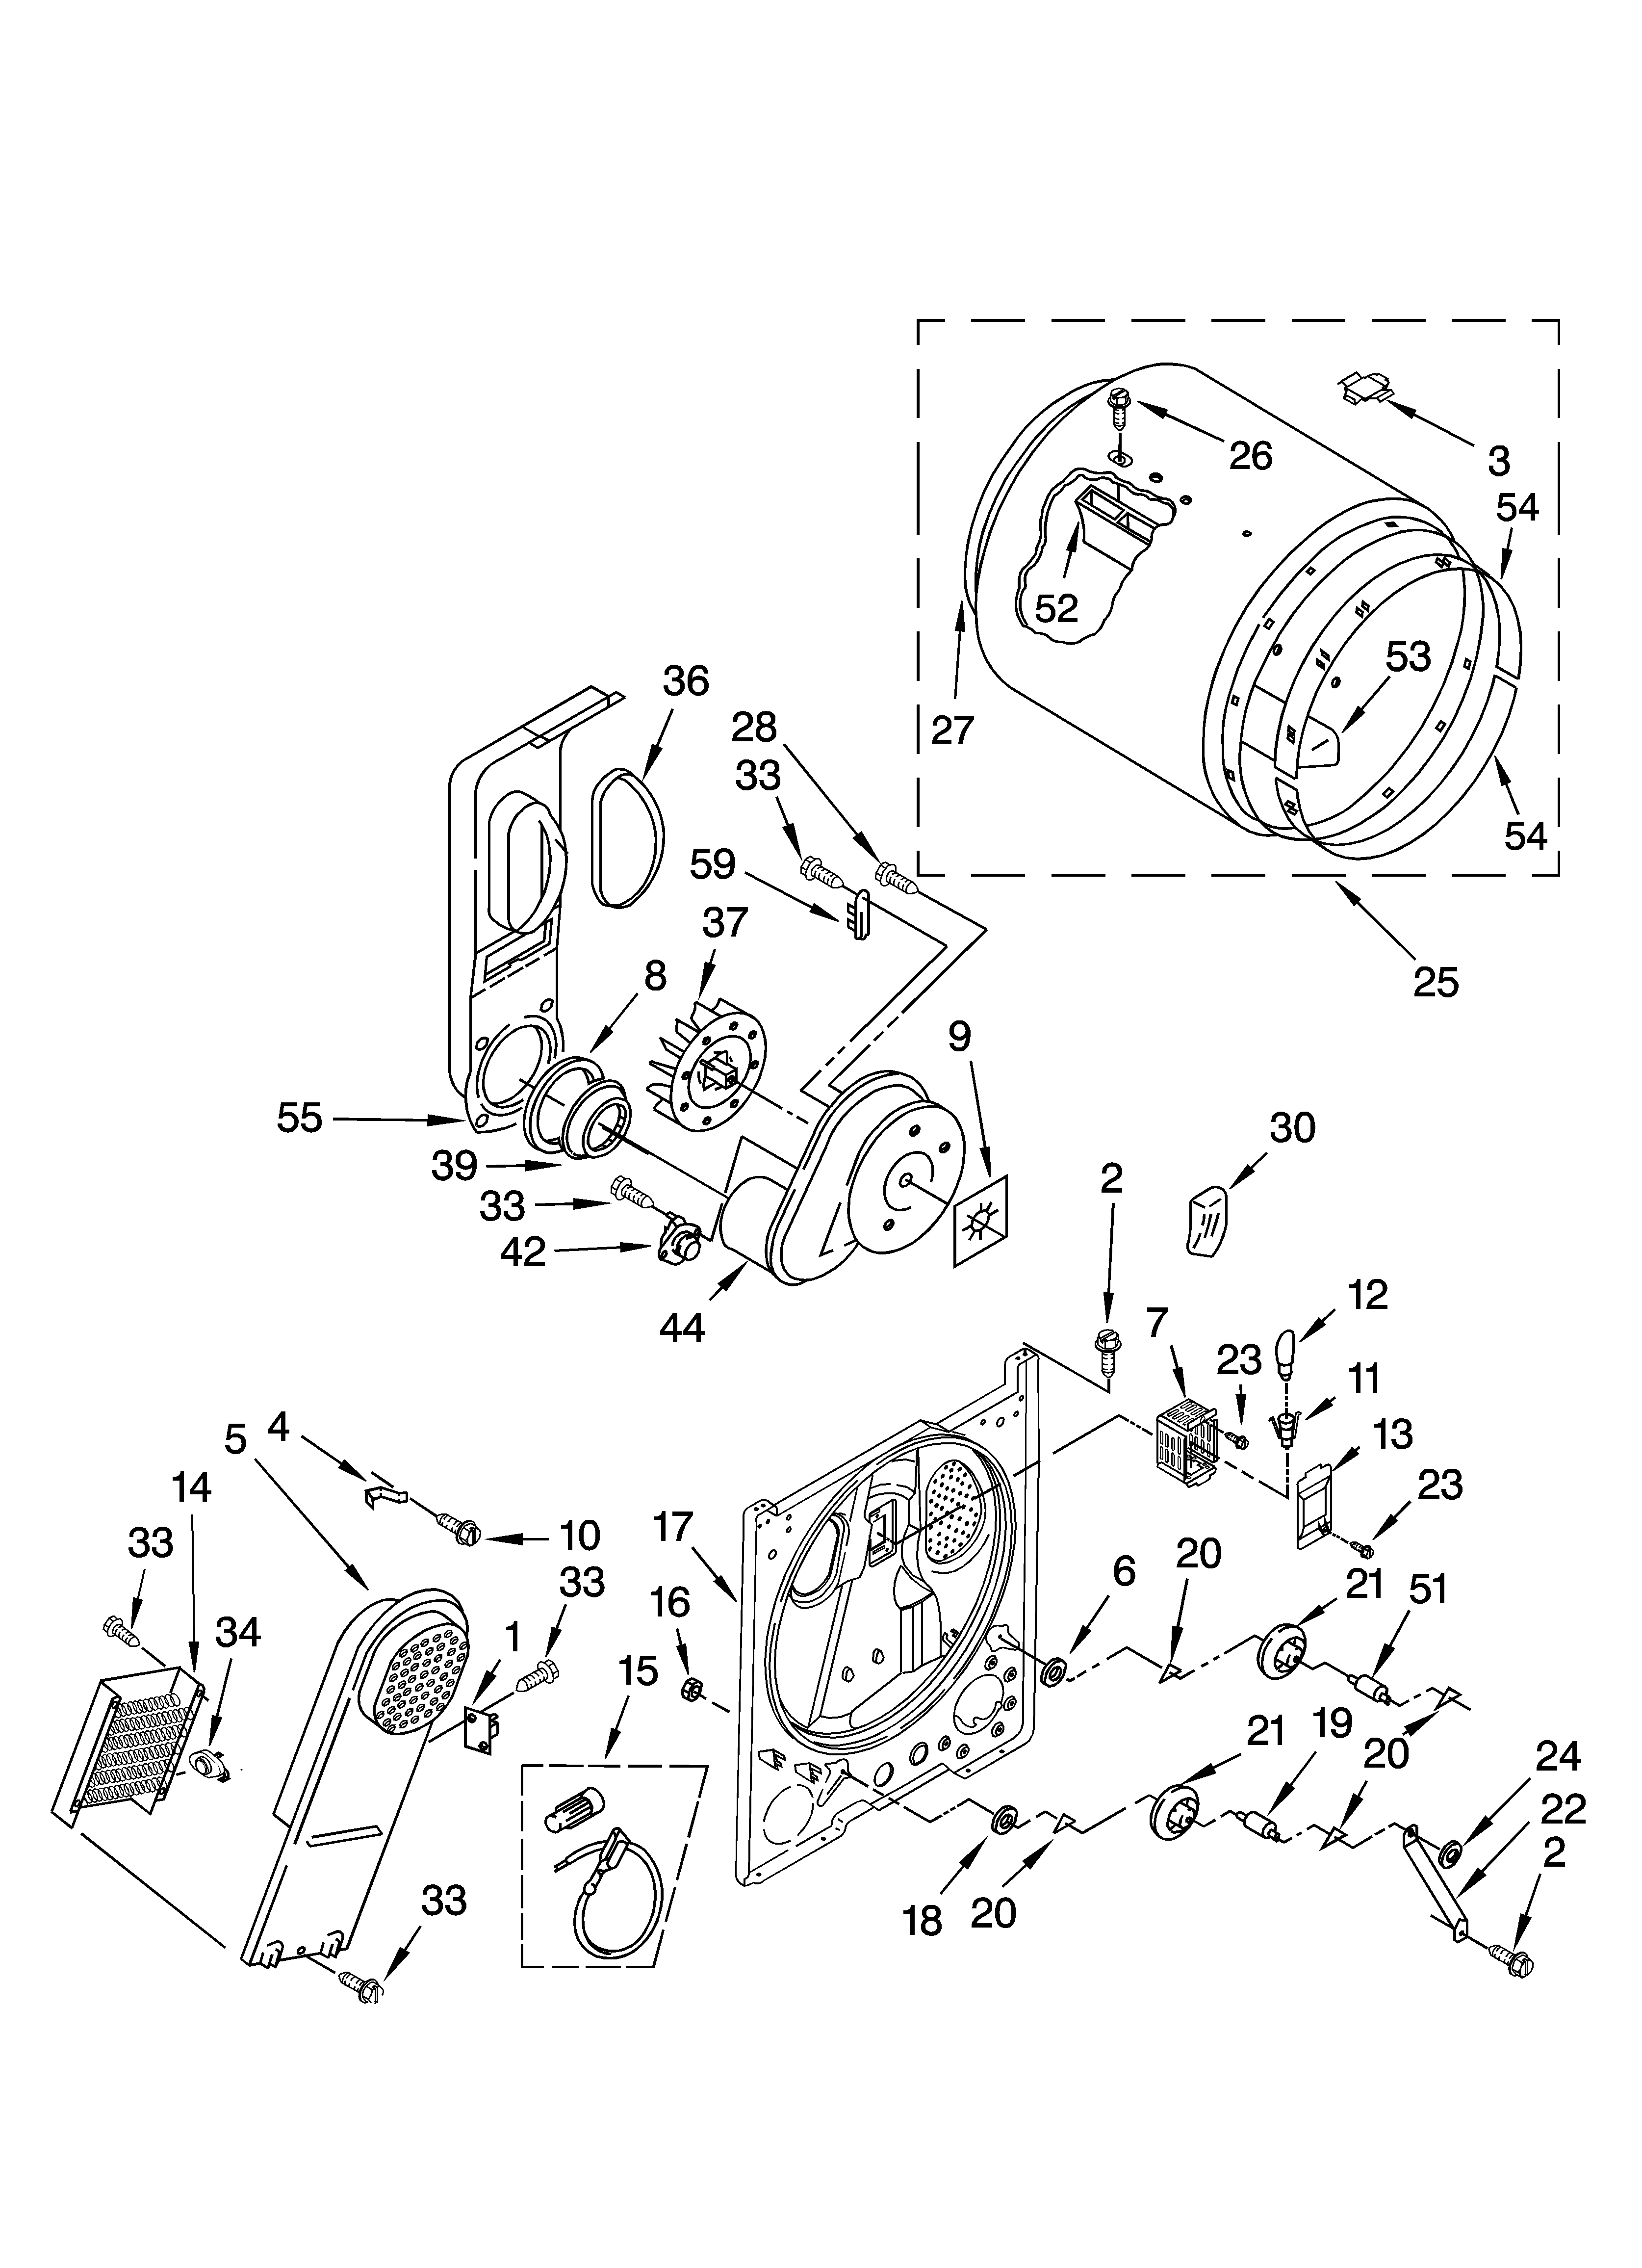 Kenmore 110 Heating Element Connecting Wire